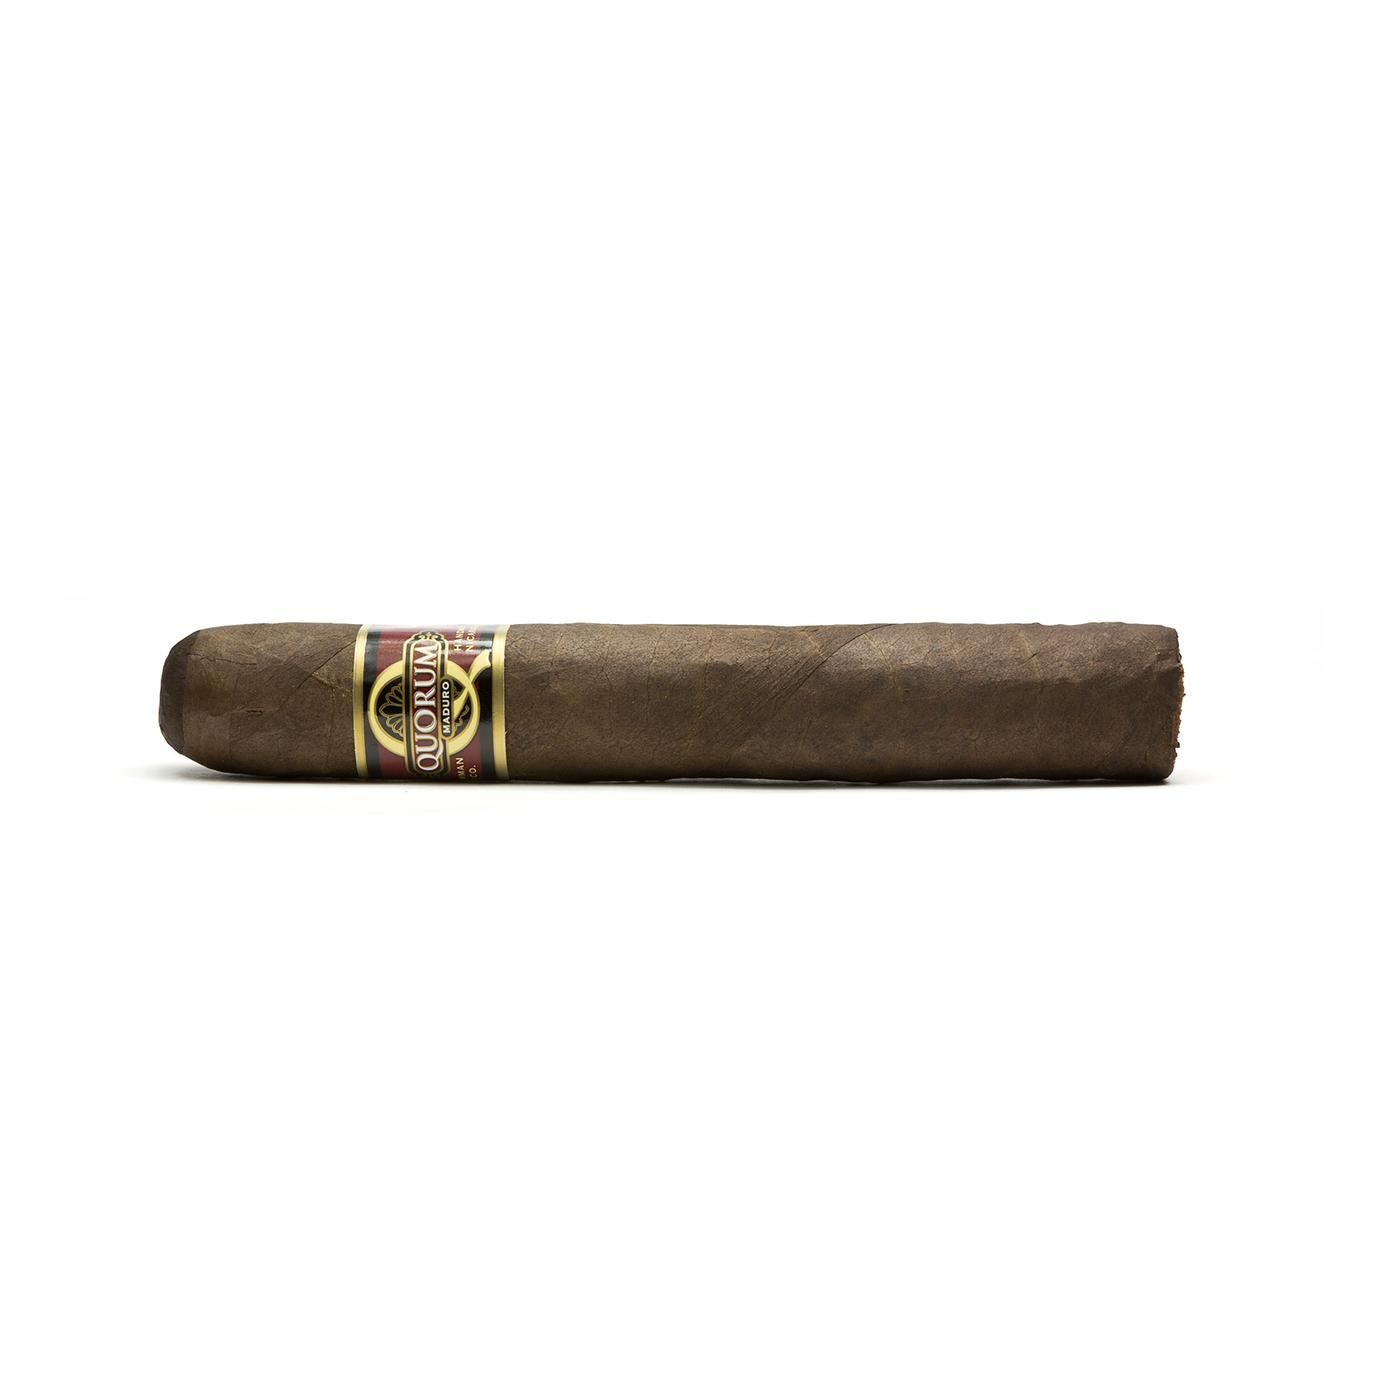 Quorum Maduro Double Gordo